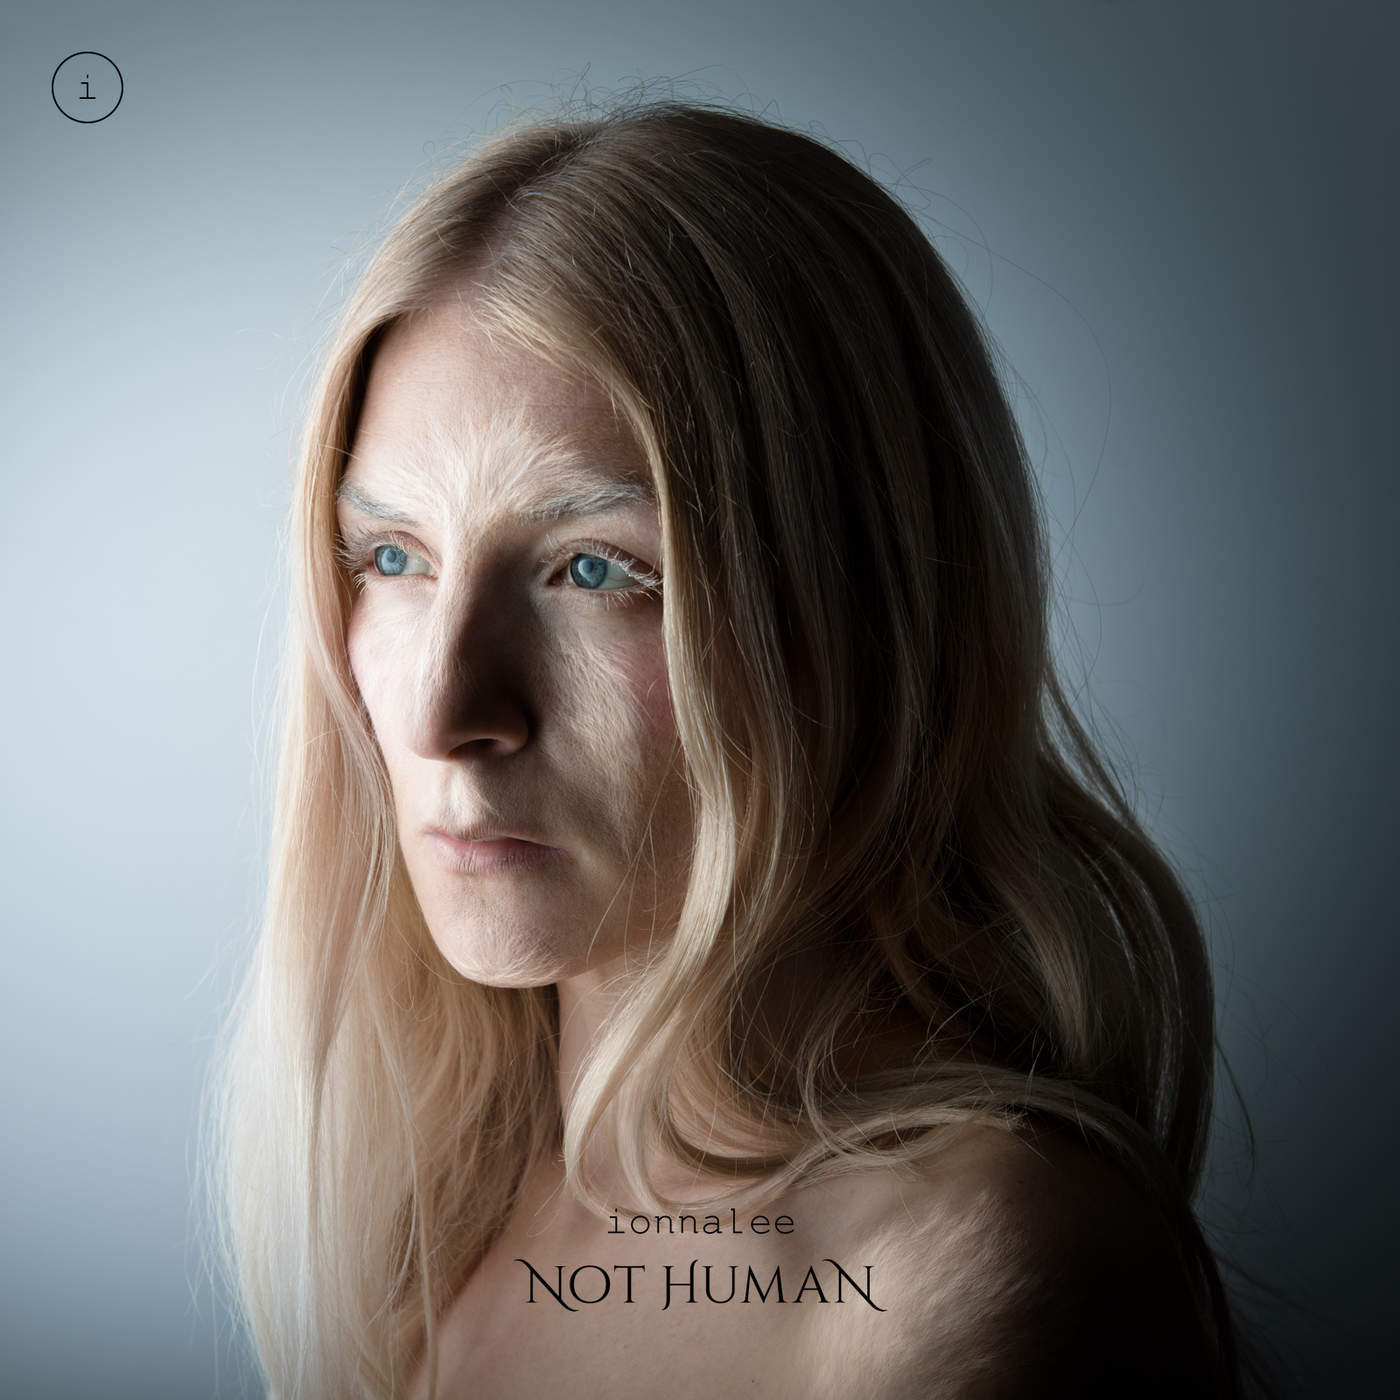 ionnalee - Not Human - Single Cover